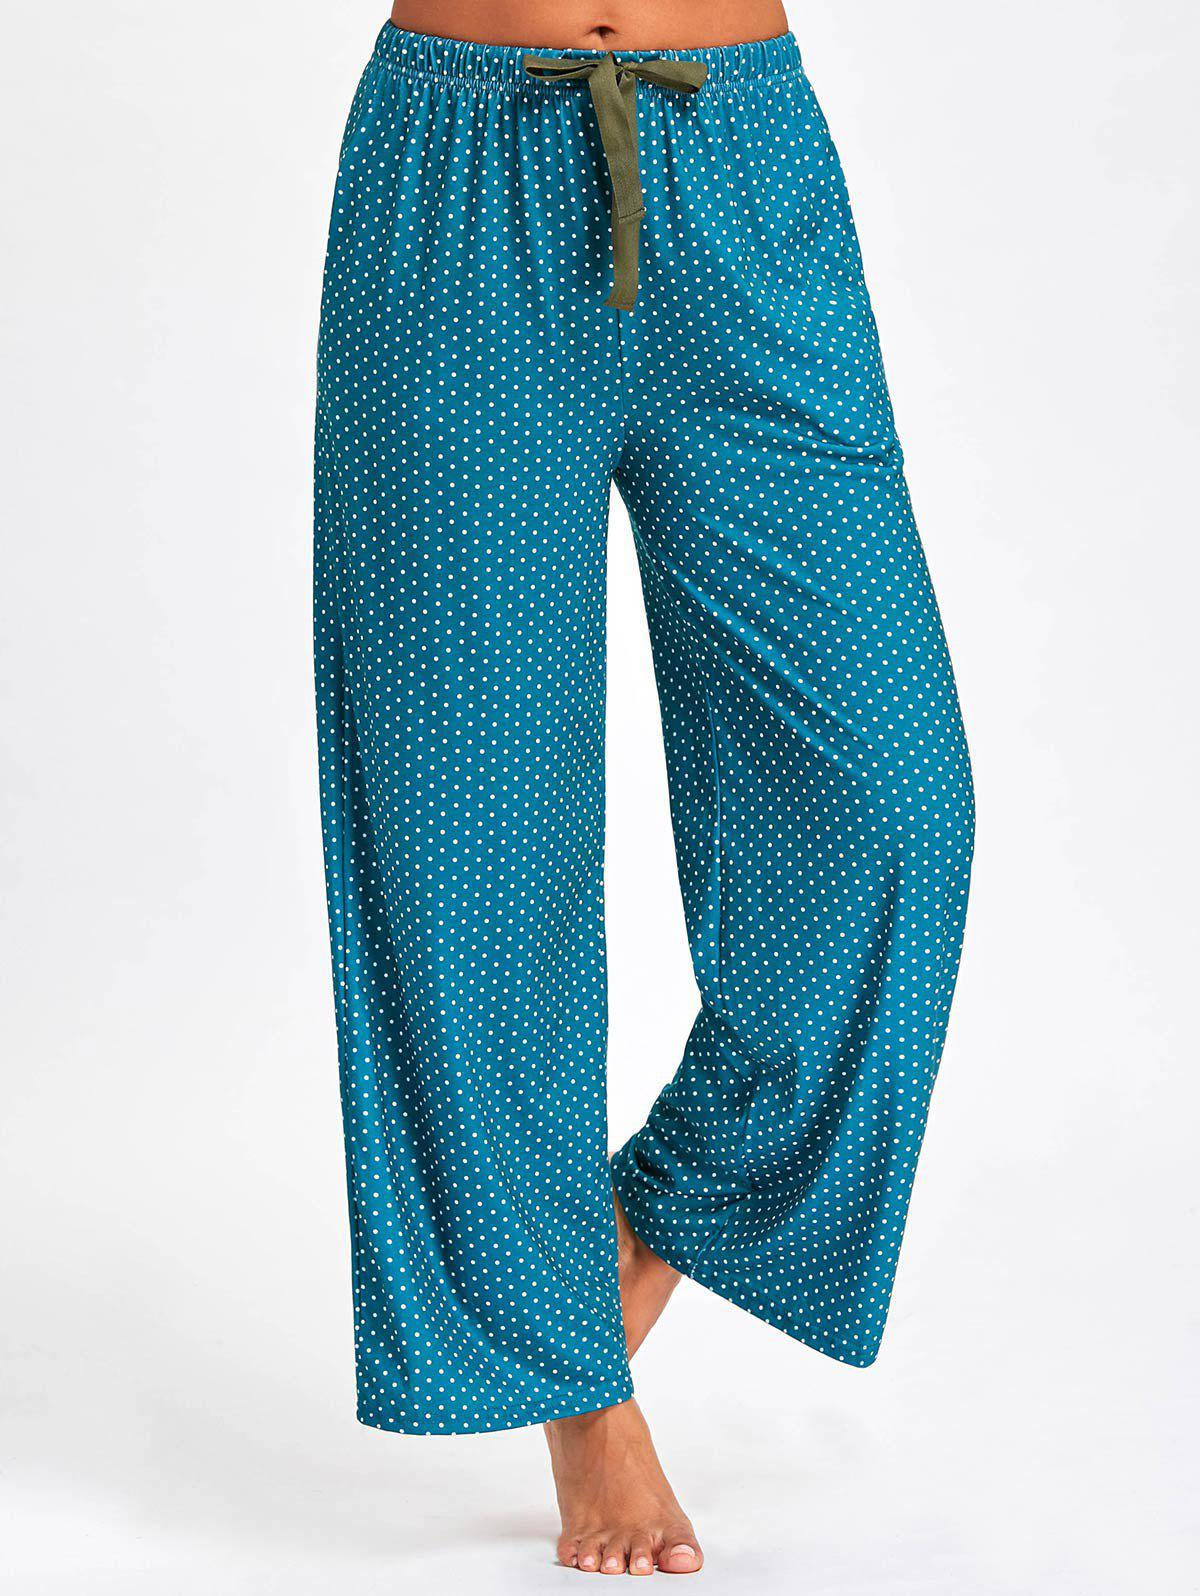 Drawstring Waist Polka Dot Pajama PantsWOMEN<br><br>Size: XL; Color: DEEP GREEN; Material: Polyester,Spandex; Pattern Type: Polka Dot; Weight: 0.2700kg; Package Contents: 1 x Pants;